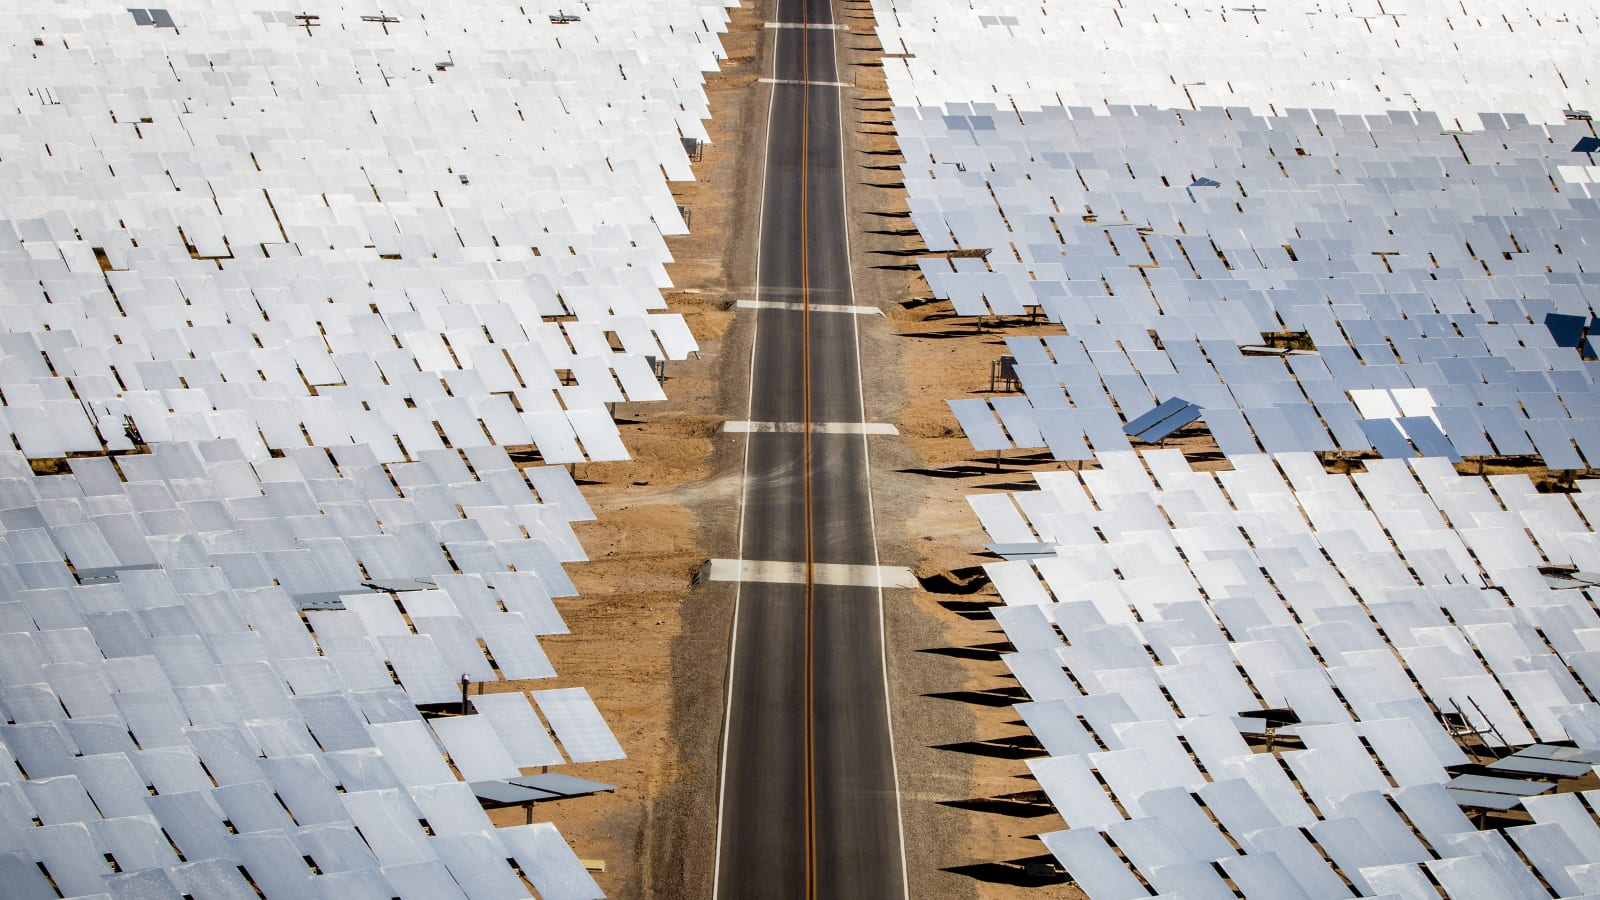 USA - Energy - Ivanpah